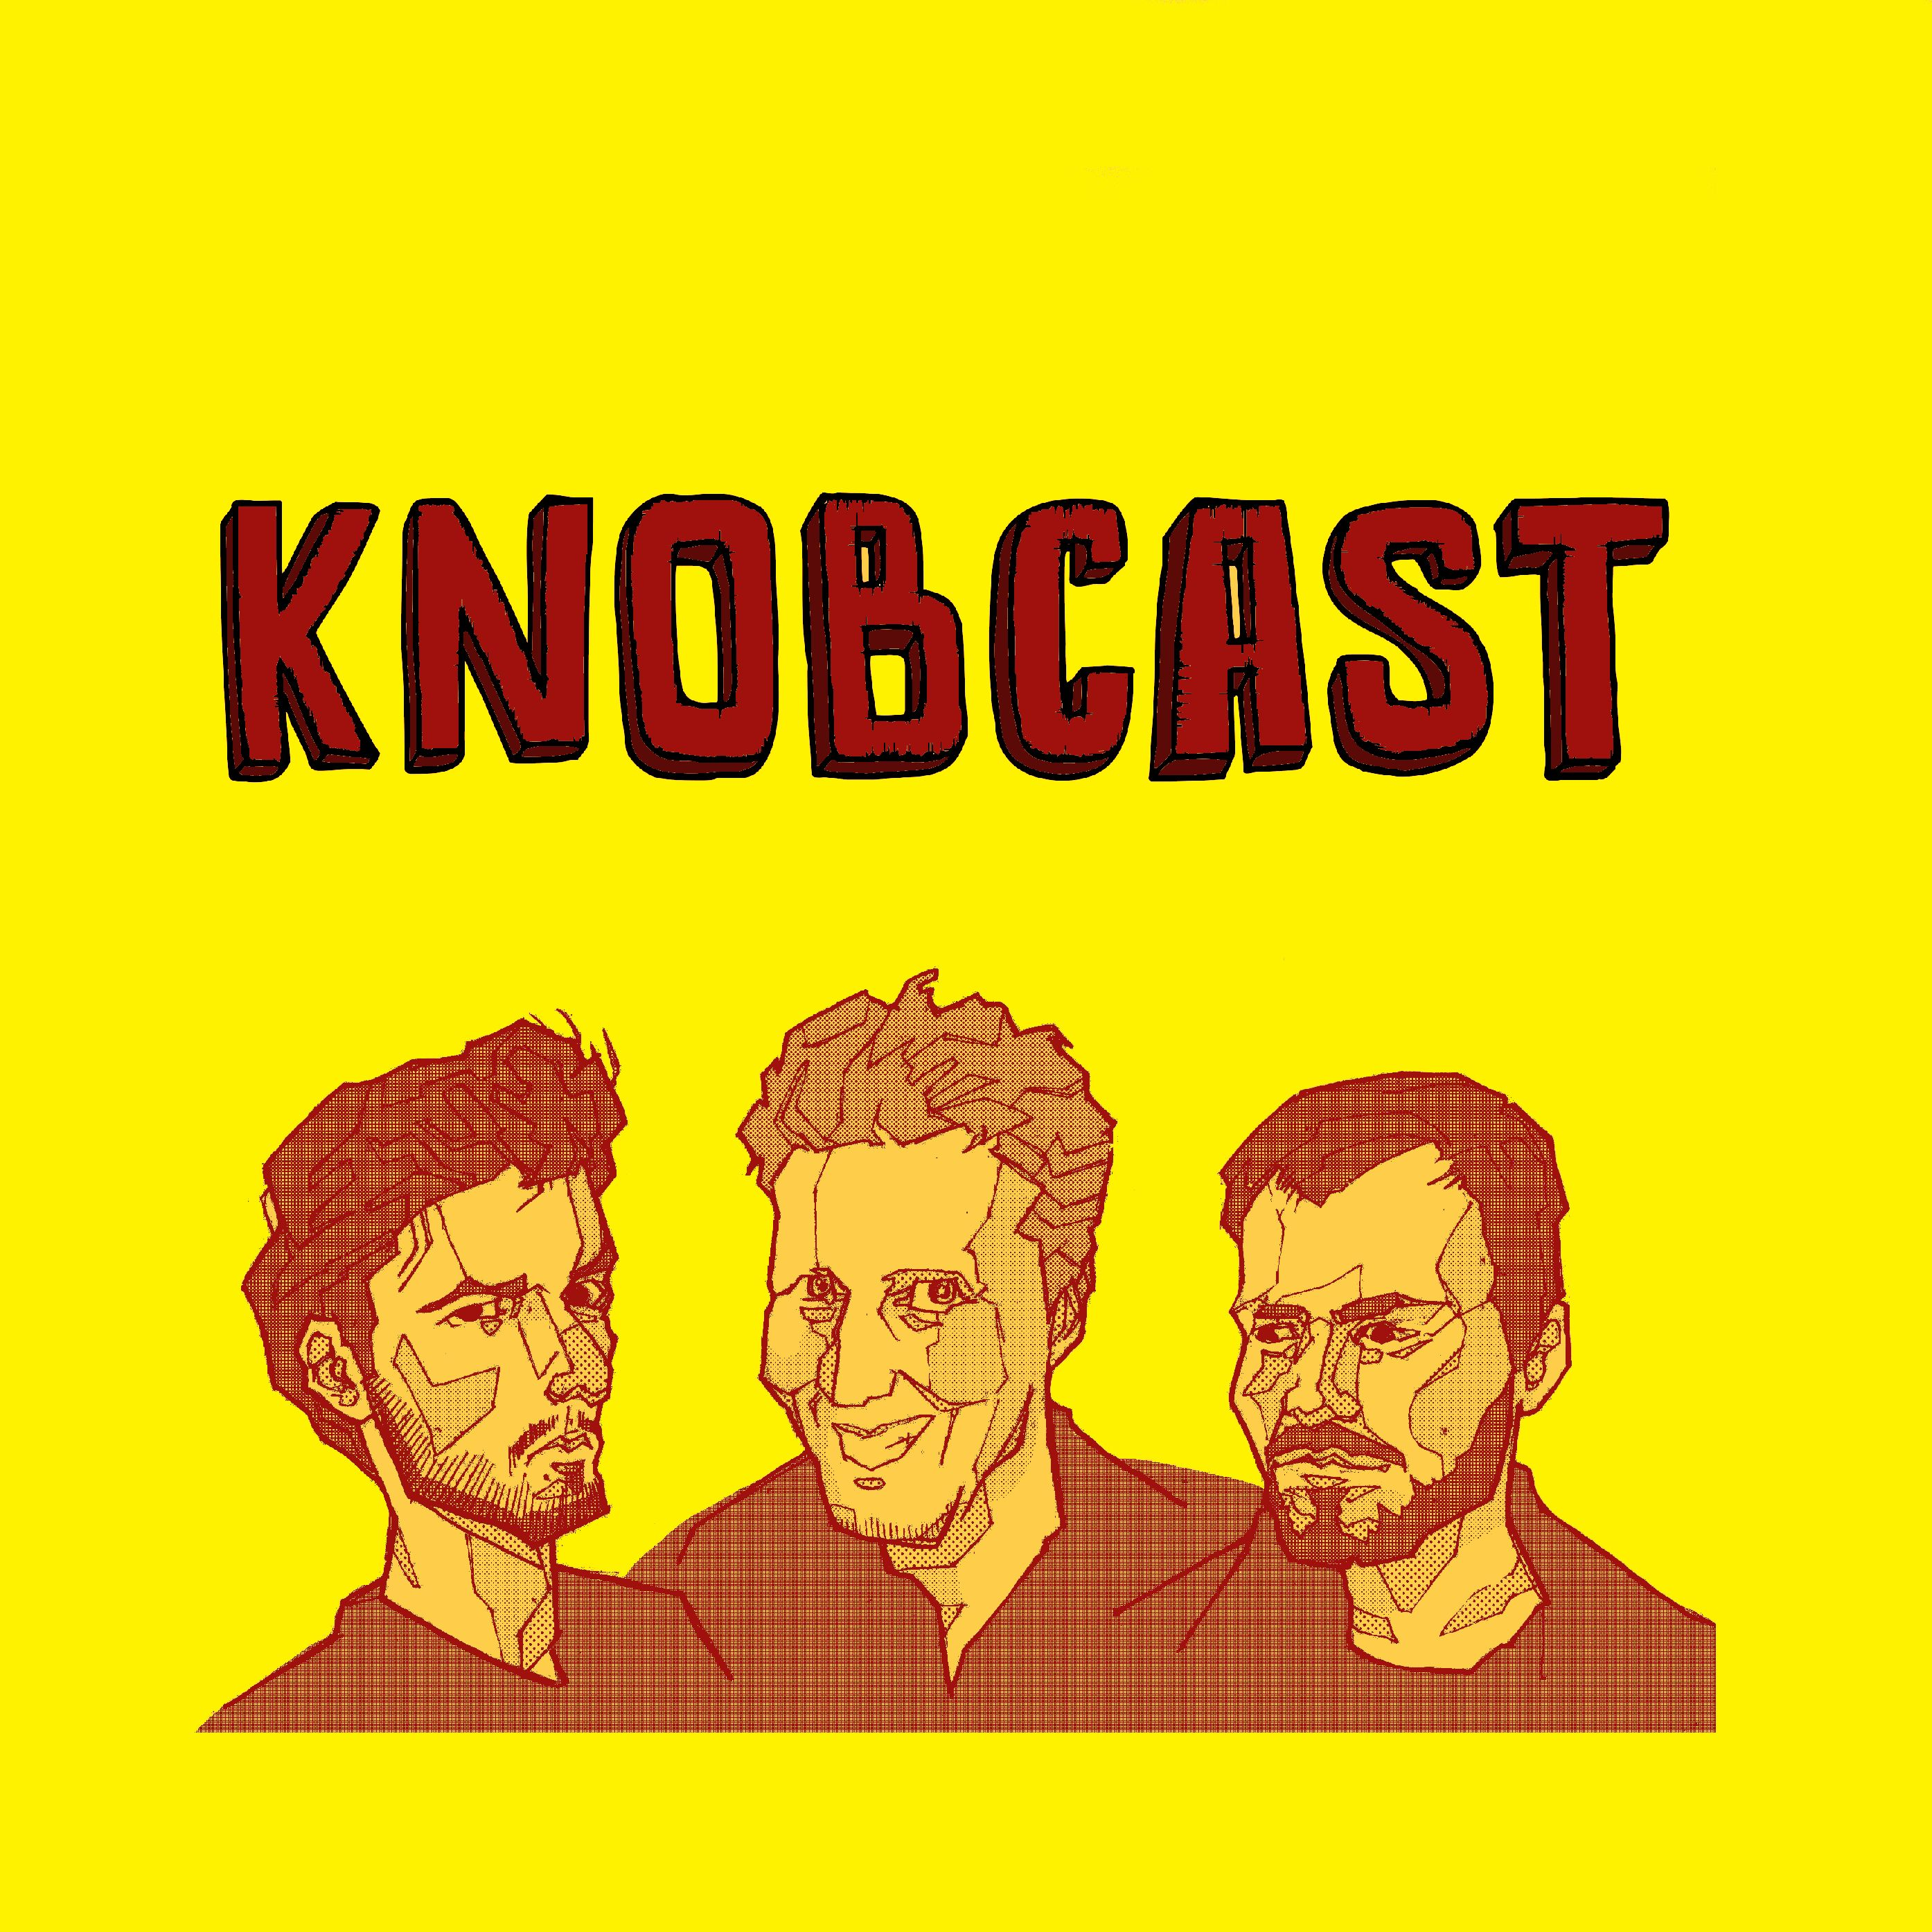 Knobcast - An Irish Podcast